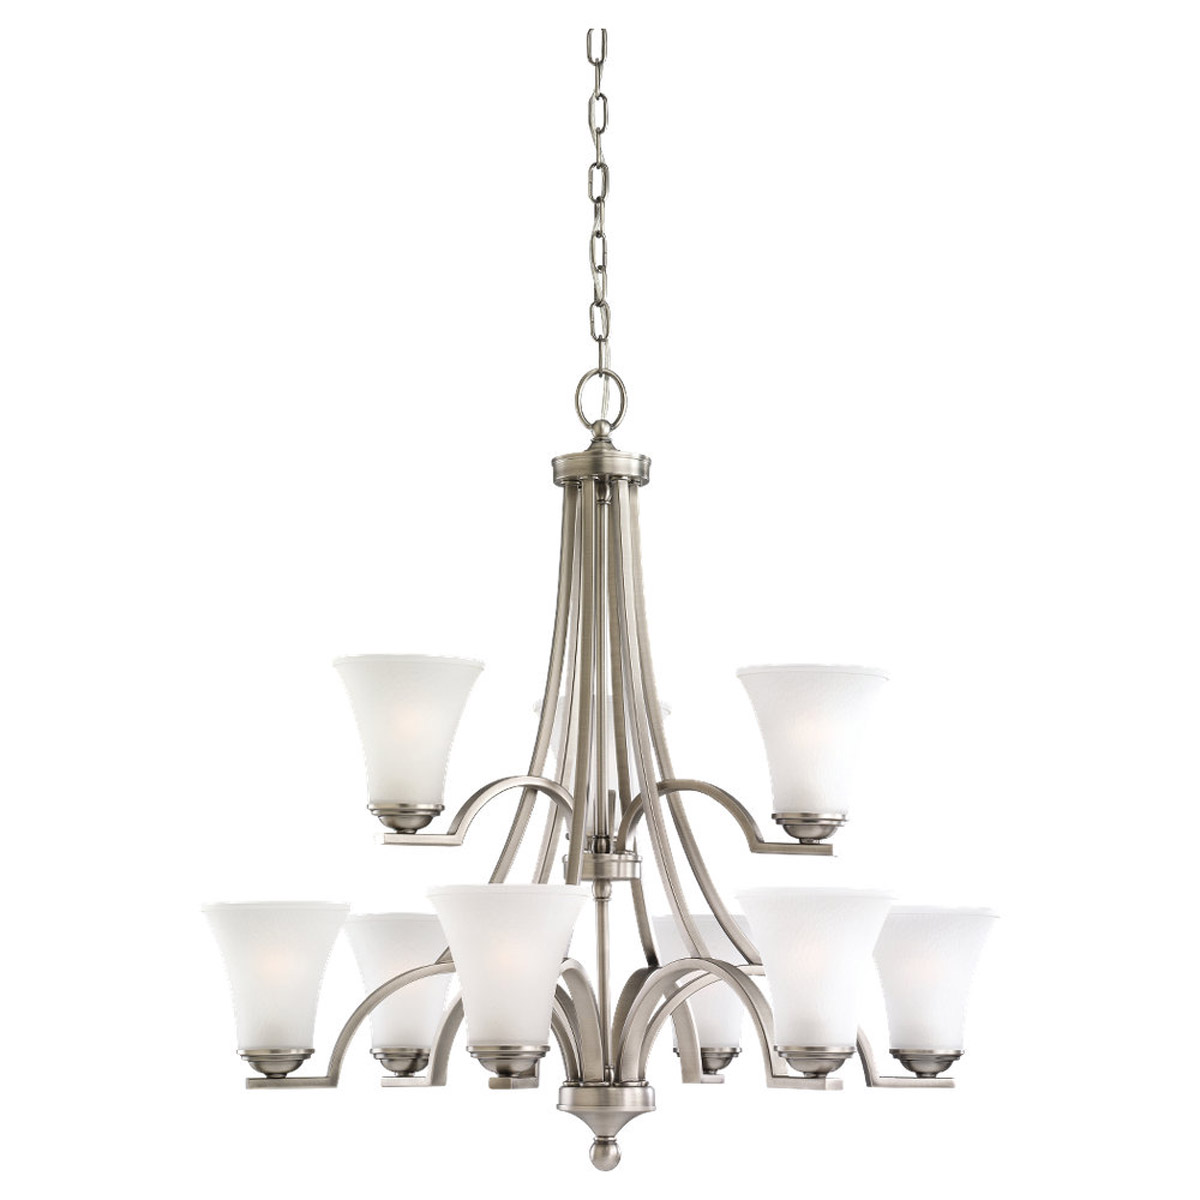 Sea Gull Lighting Somerton 9 Light Chandelier in Antique Brushed Nickel 31377-965